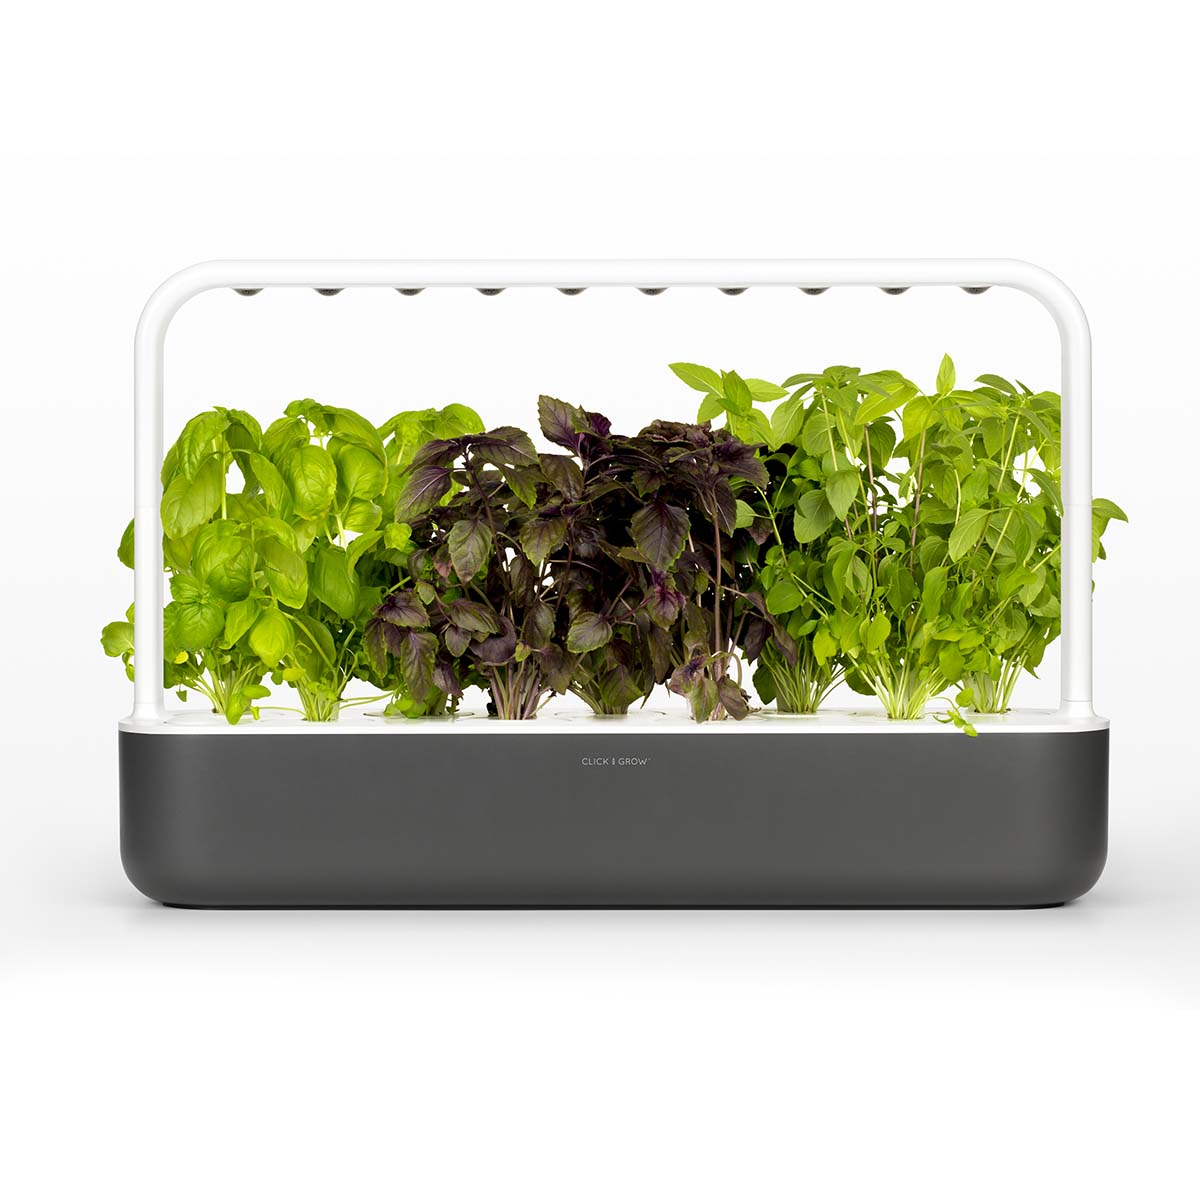 Grow plants at home with Click & Grow indoor garden.